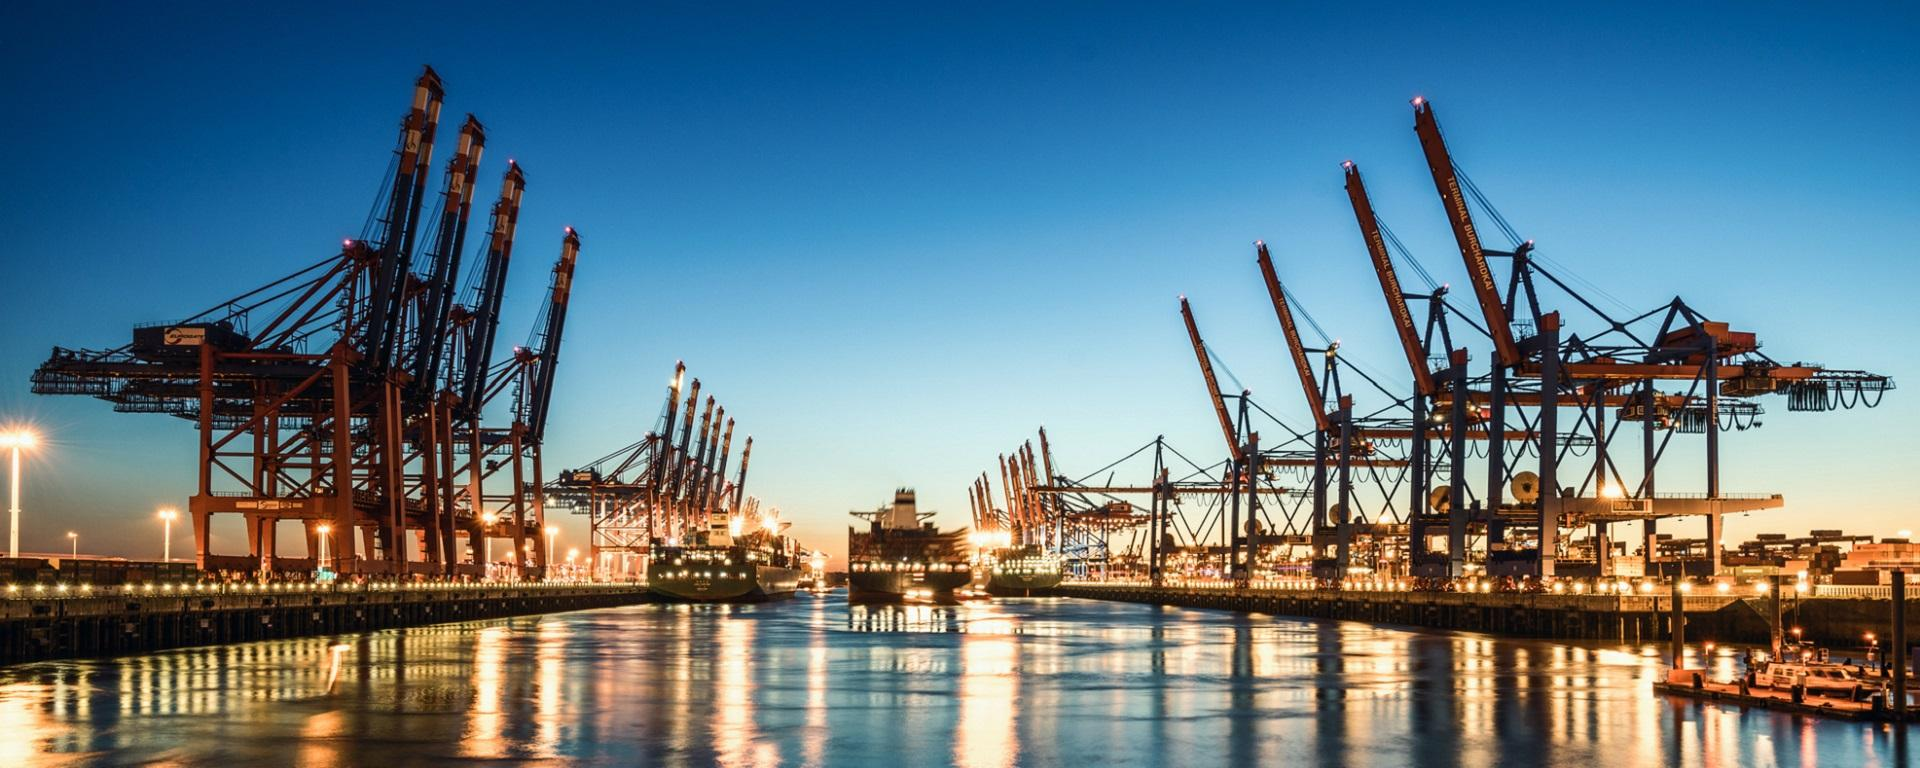 Hamburg's container port is the third largest container port in Europe. Source: Fotolia / davis